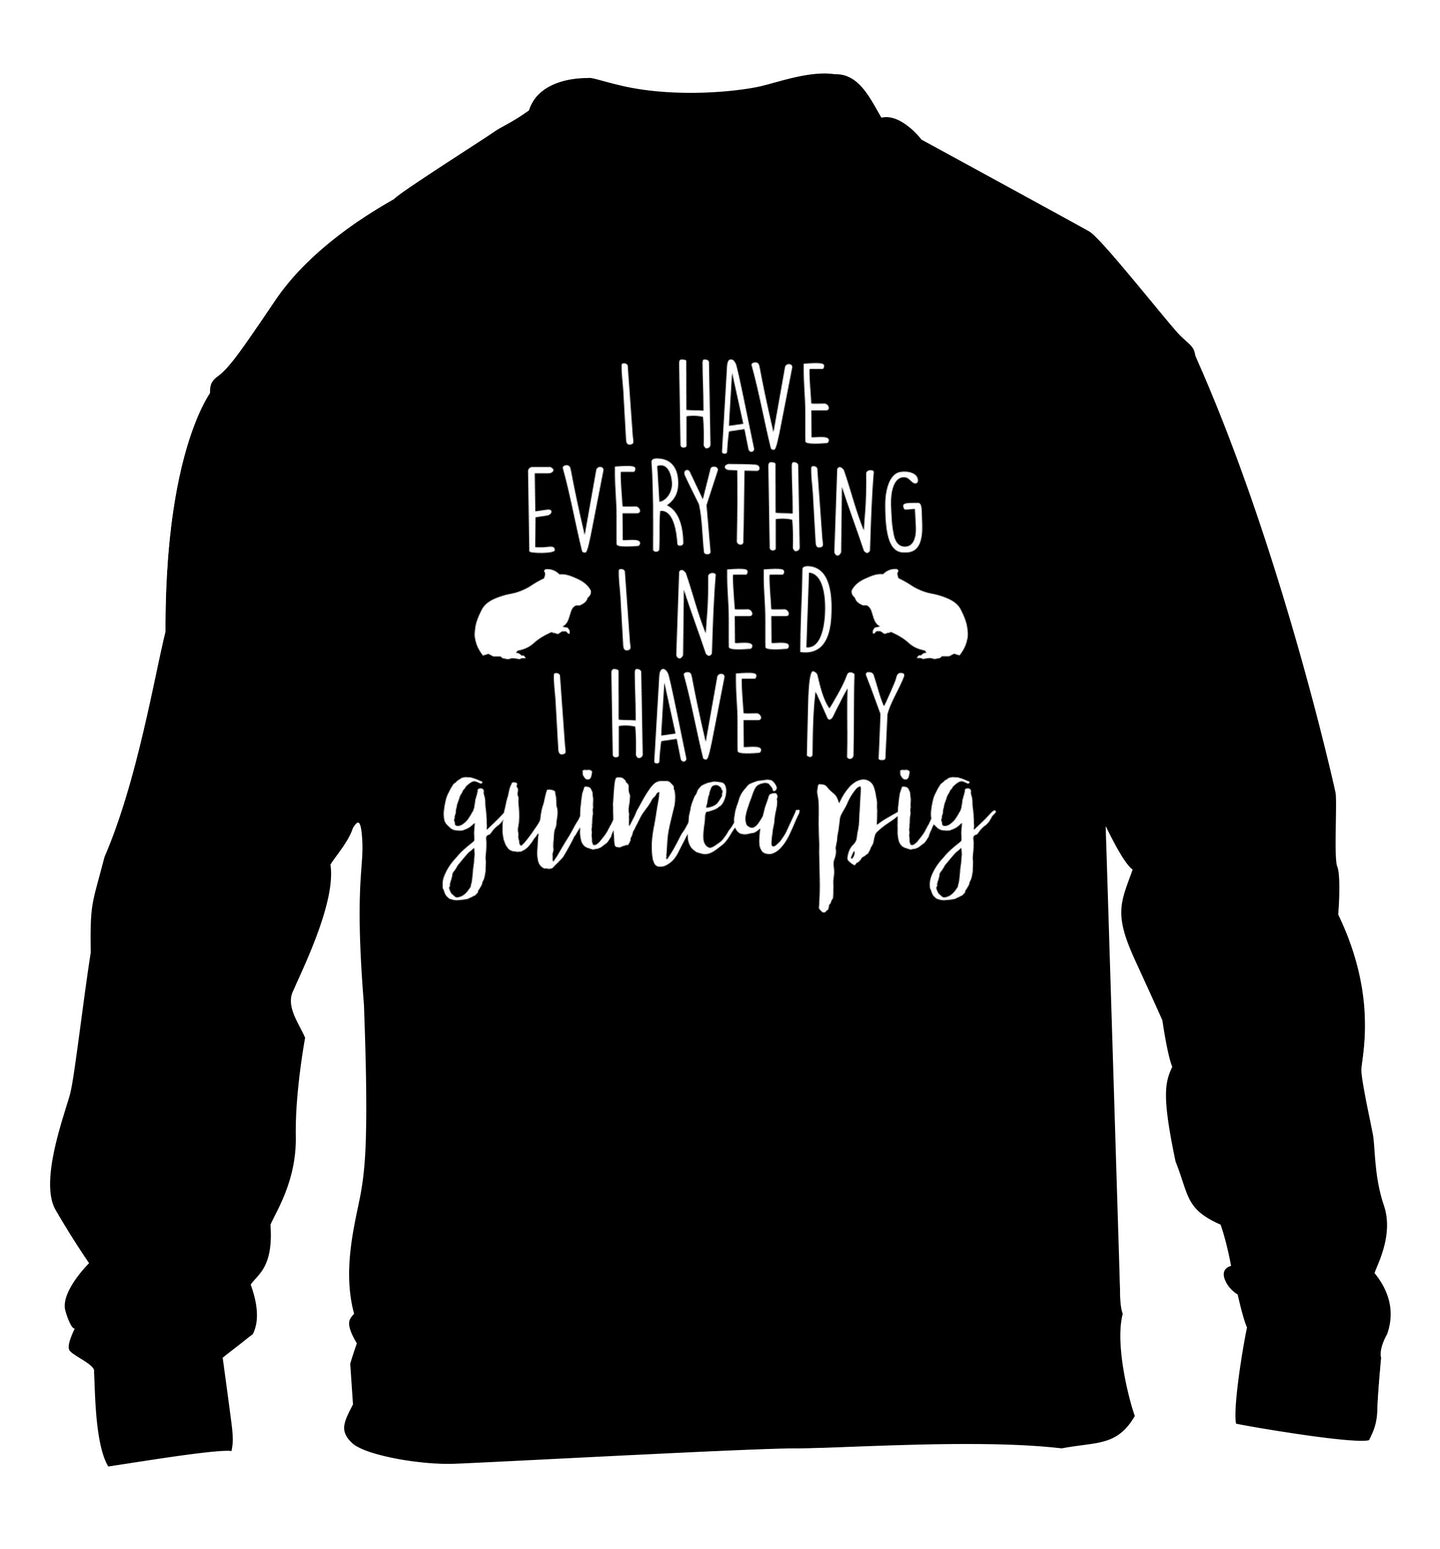 I have everything I need, I have my guinea pig children's black  sweater 12-14 Years